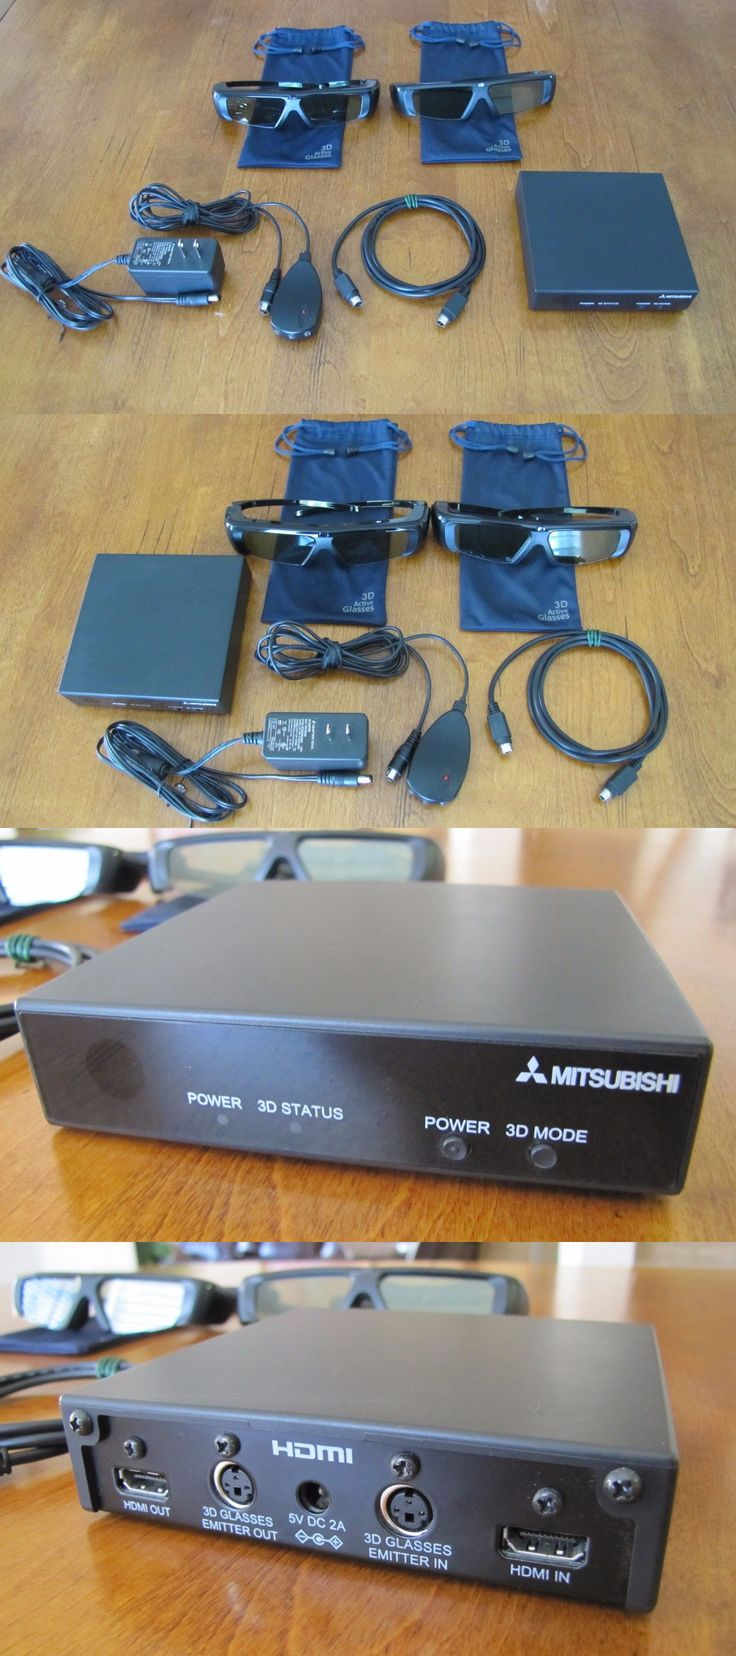 3D TV Glasses and Accessories: Mitsubishi 3D Kit 3Dc-1000, 2 Pair Of Glasses, Plus All Cables Plugs Never Used -> BUY IT NOW ONLY: $99.99 on eBay!